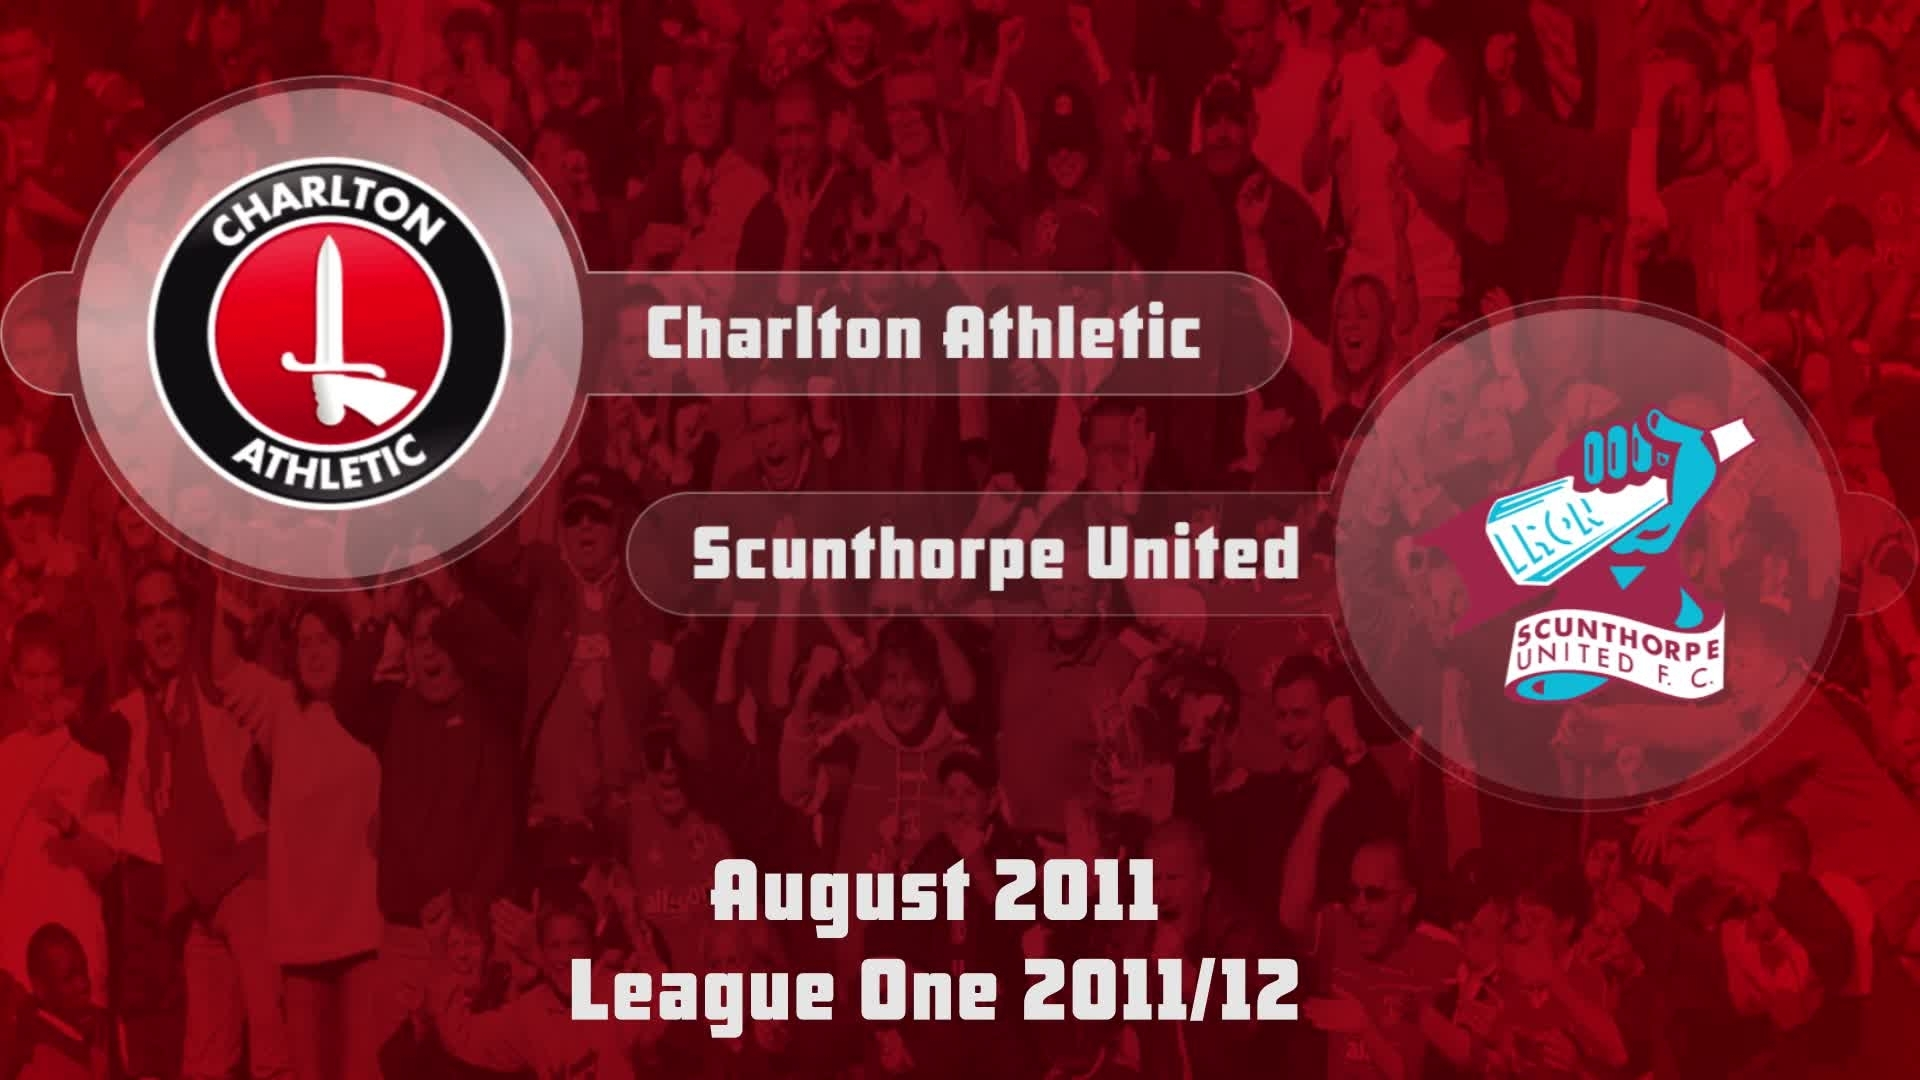 04 HIGHLIGHTS | Charlton 2 Scunthorpe 2(Aug 2011)